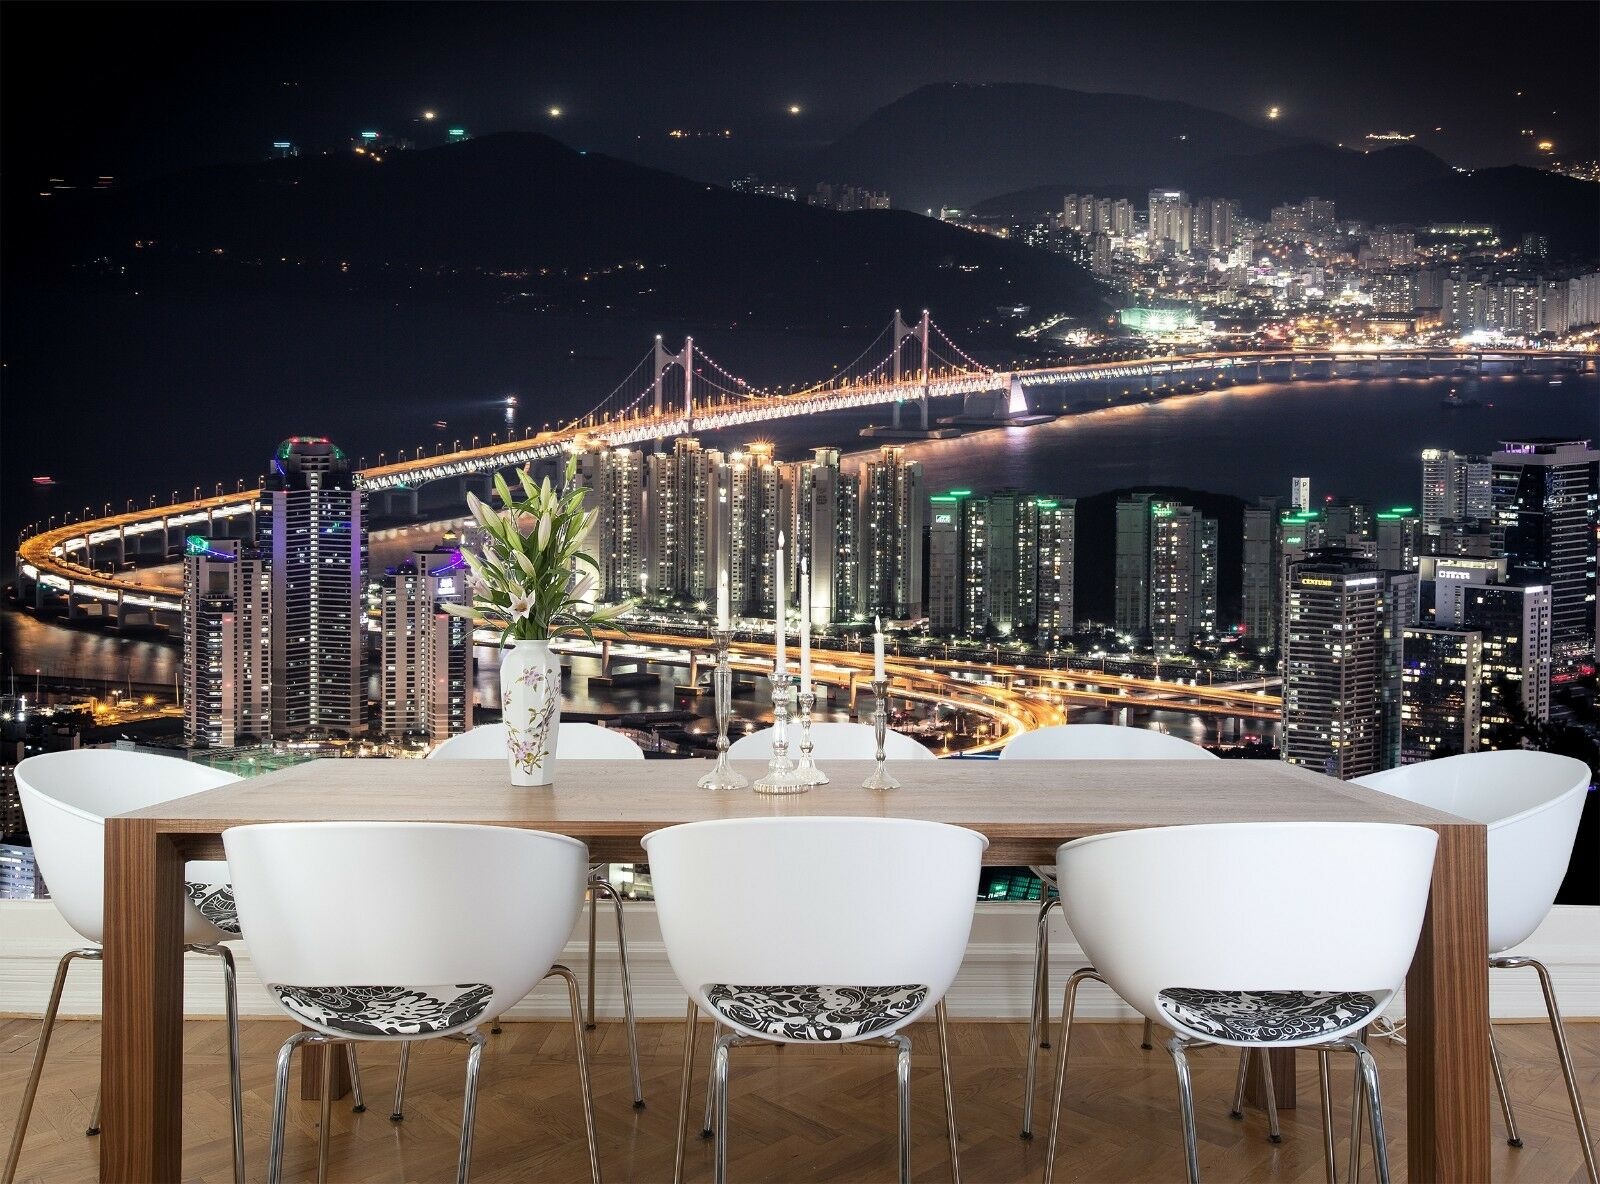 City of Night  Photo Wallpaper Wall Mural DECOR Paper Poster Free Paste